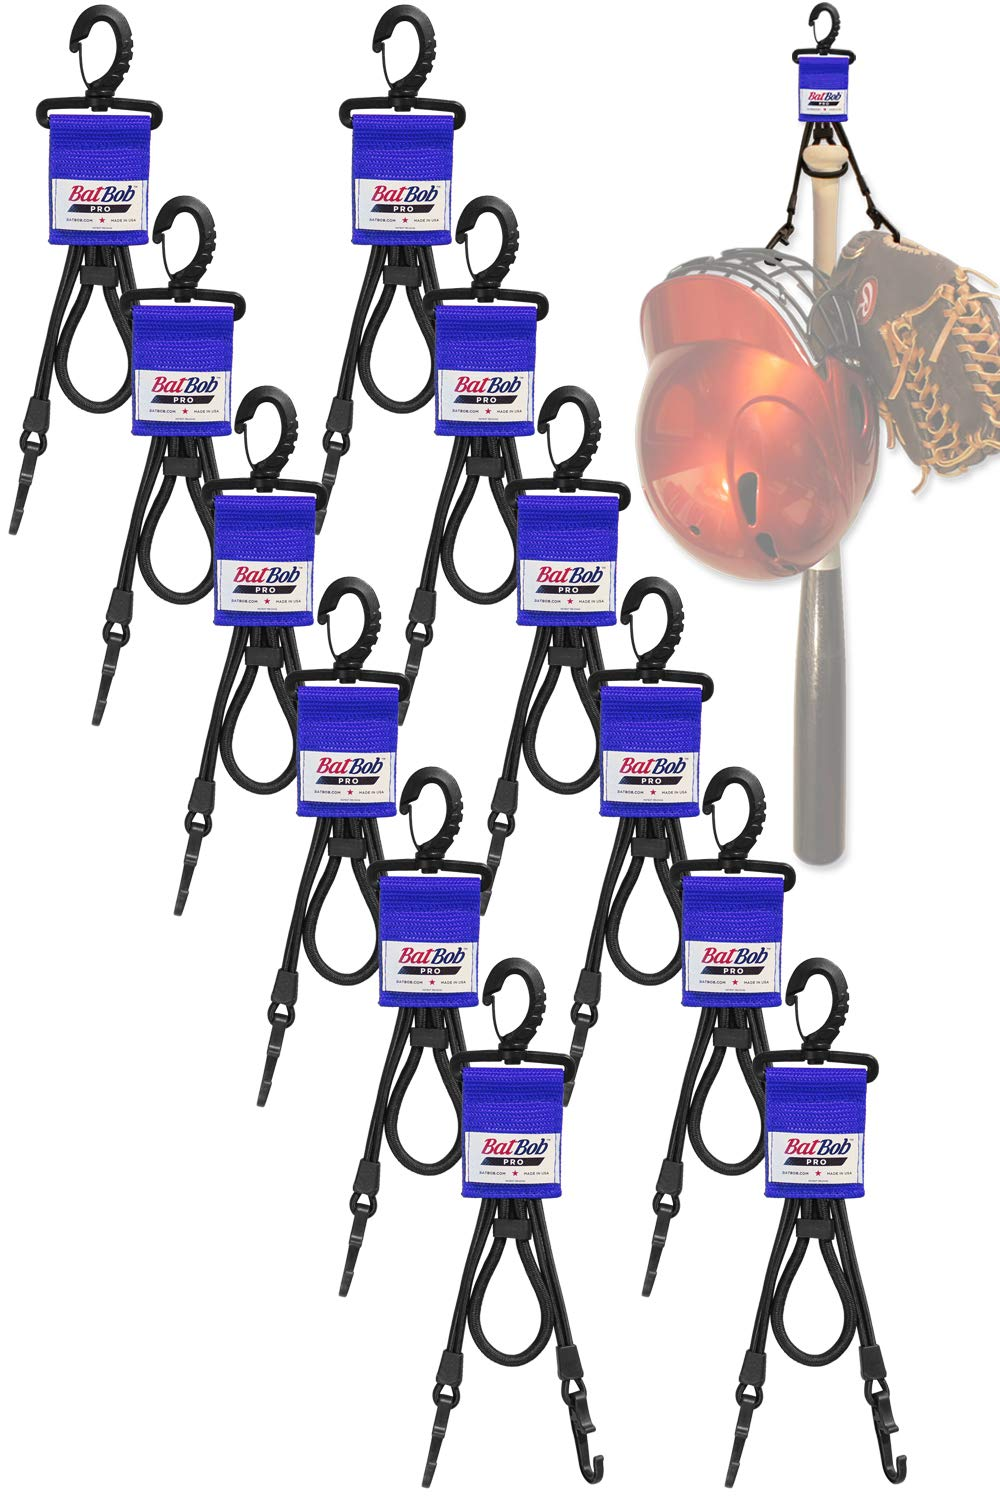 BatBob (Team 12 pack) Dugout Gear Hanger - The Dugout Organizer - For Baseball and Softball to hold bats, helmets and gloves (Blue) by BatBob